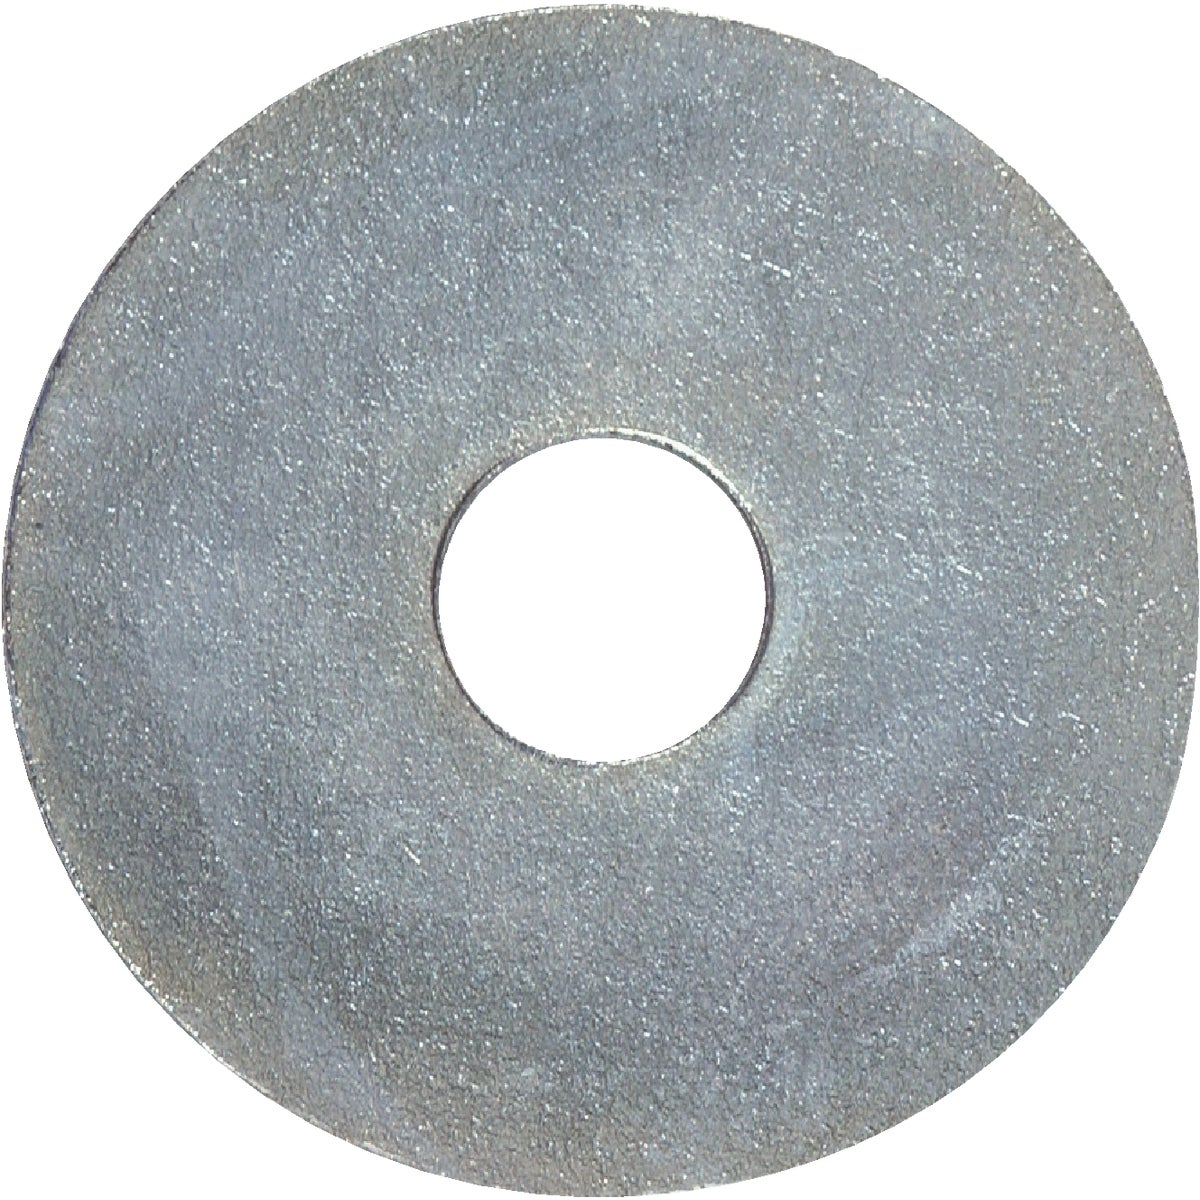 1/4X1-1/2 FENDER WASHER - 290018 by Hillman Fastener